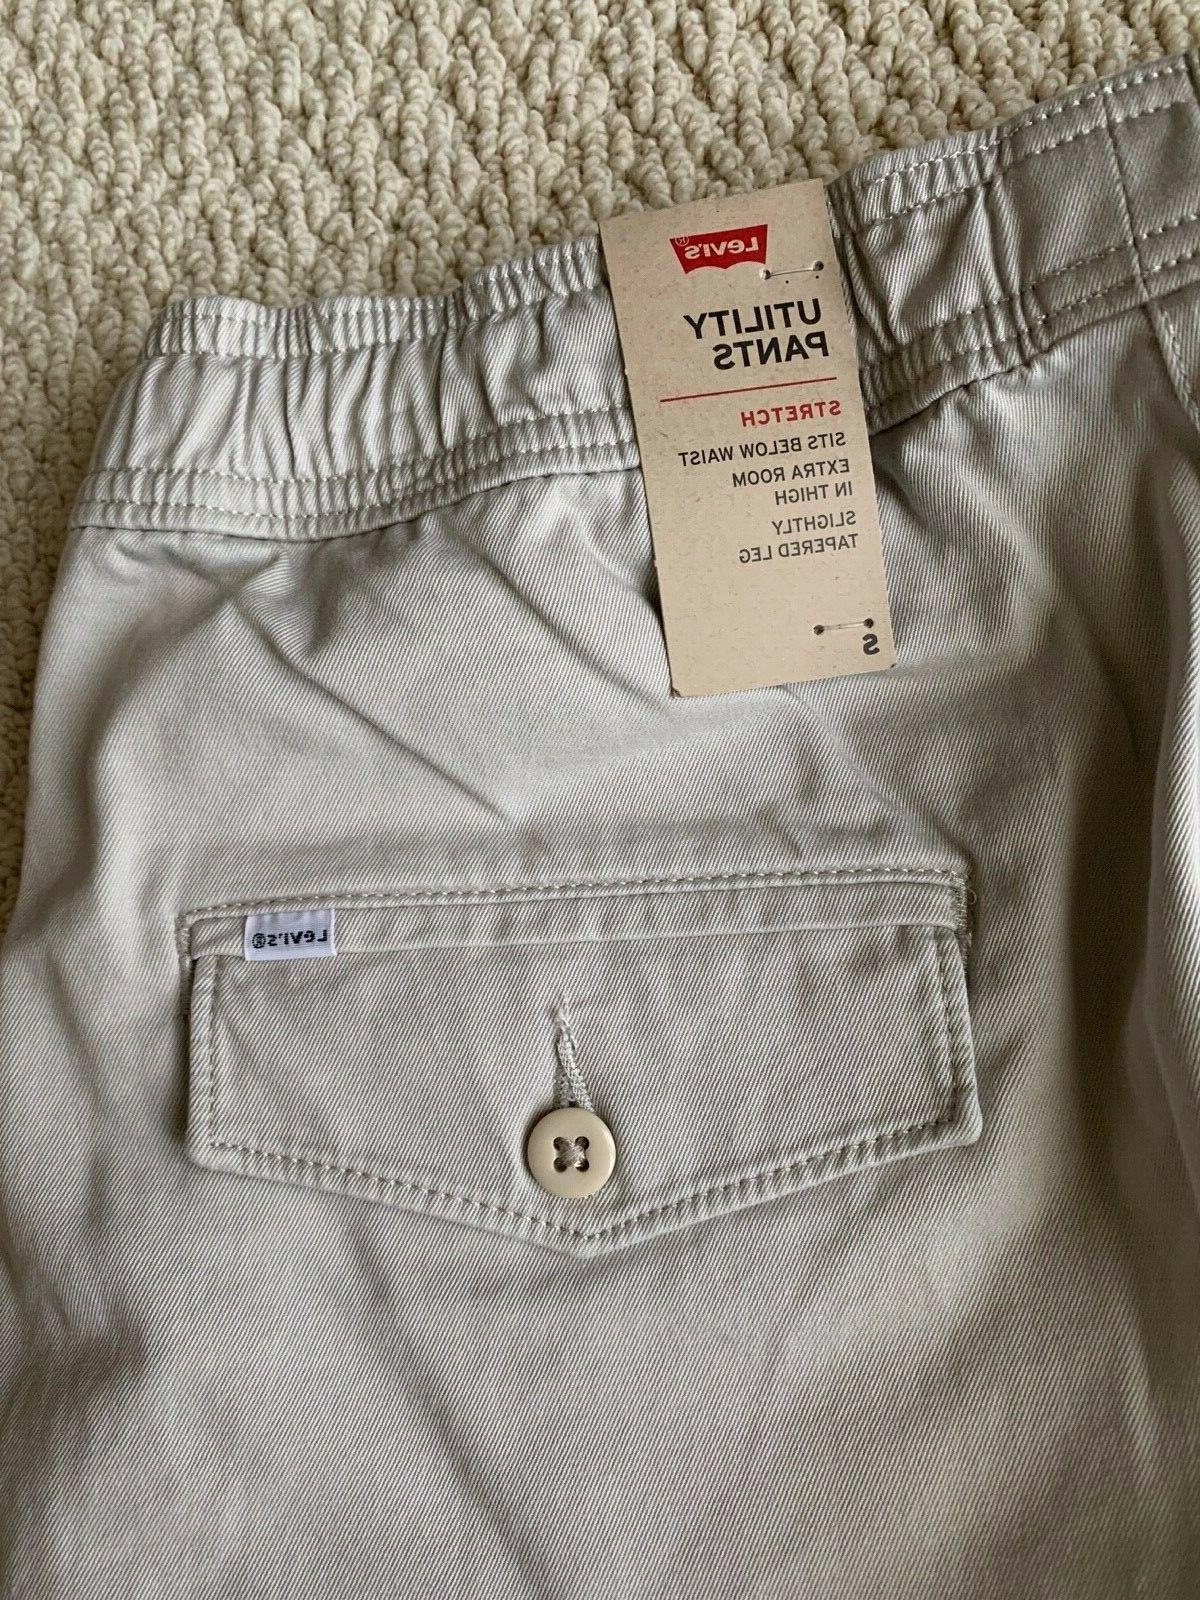 NWT Gray S-2XL